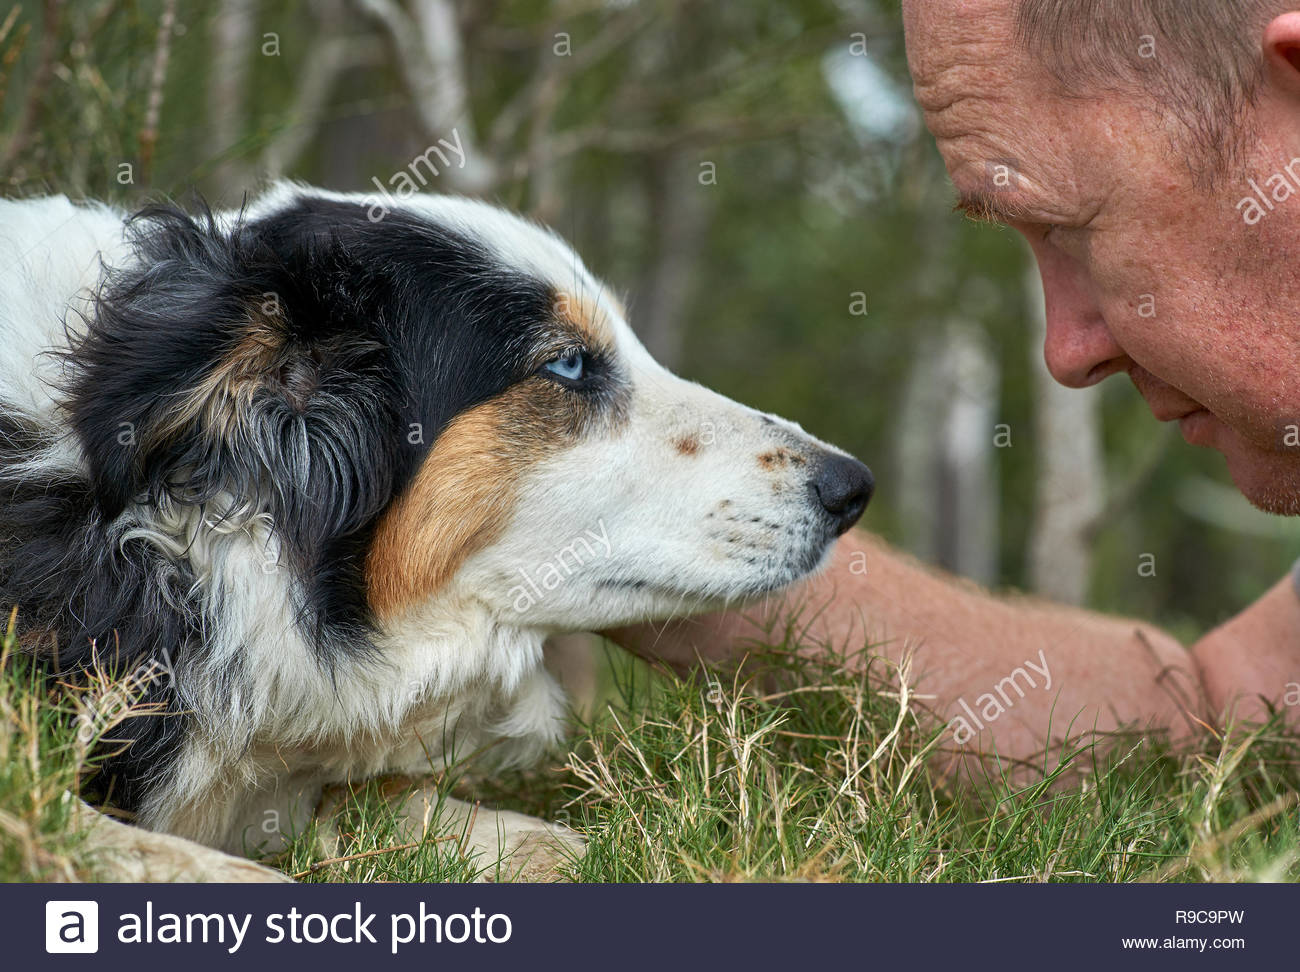 Middle-aged Caucasian male, laying face-to-face in the grass with his pet dog - a Tri-colored Border Collie with blue eyes - and man's best friend. - Stock Image